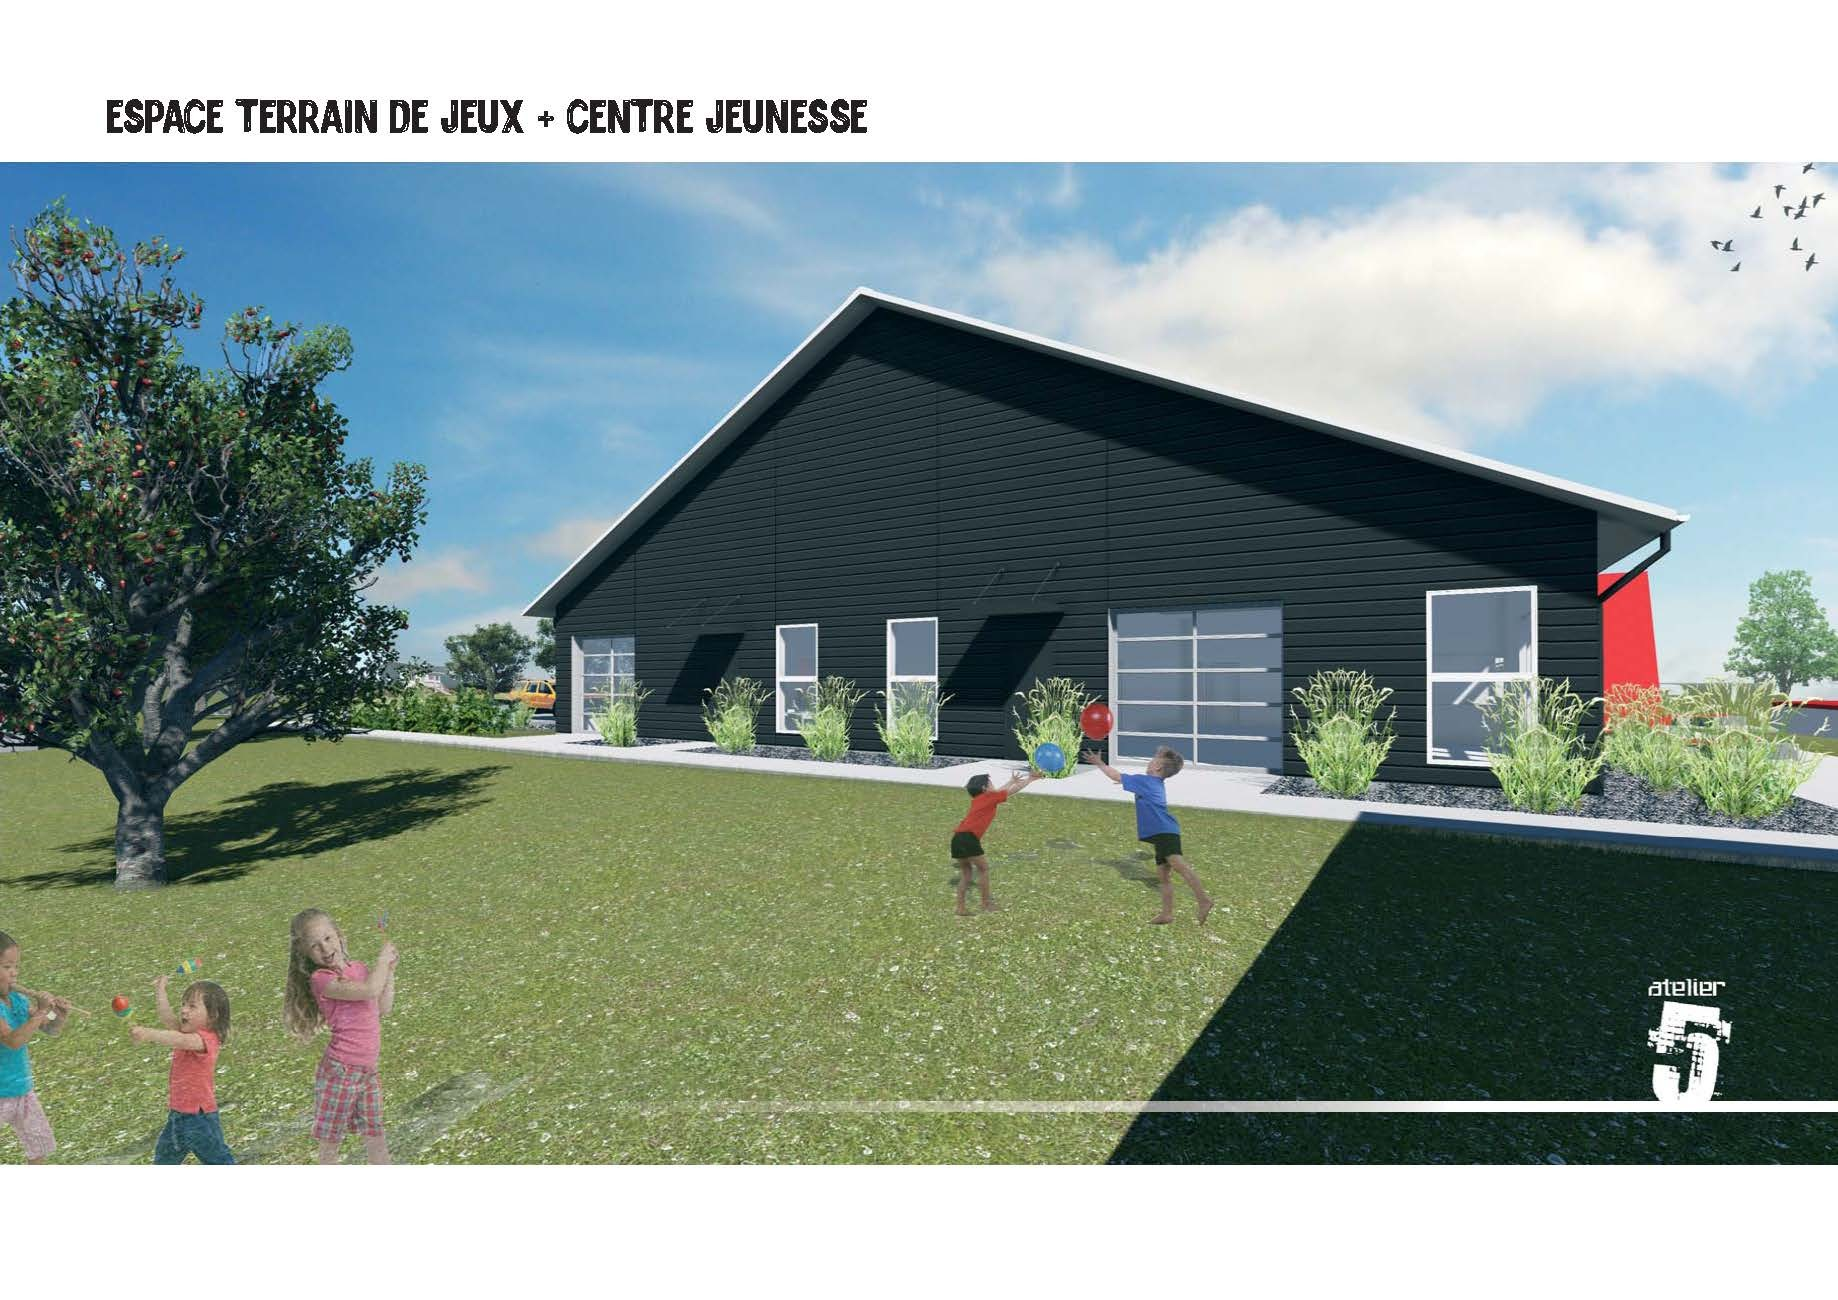 Futur bâtiment (Photo : © Angélika)